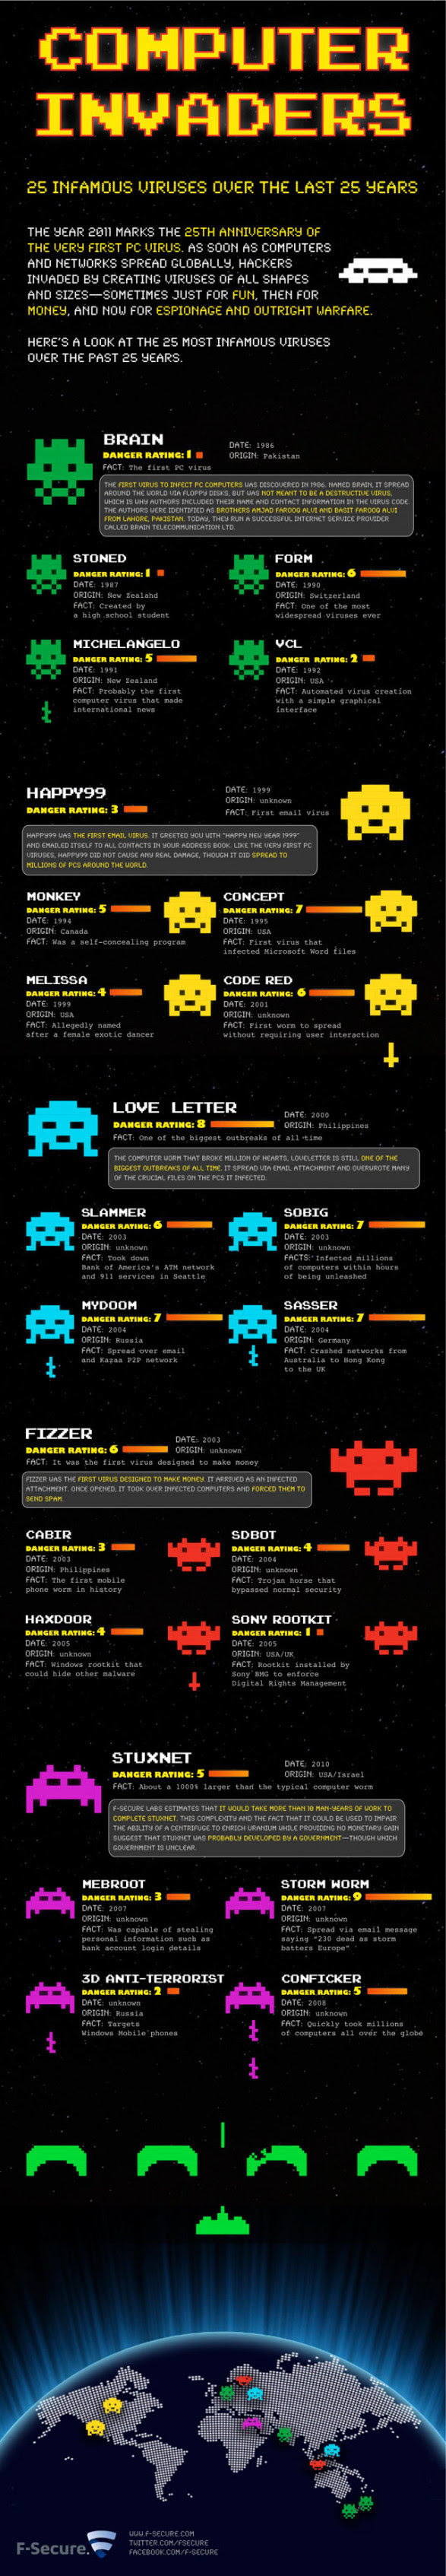 Computer Invaders: 25 Infamous Viruses Over the Last 25 Years